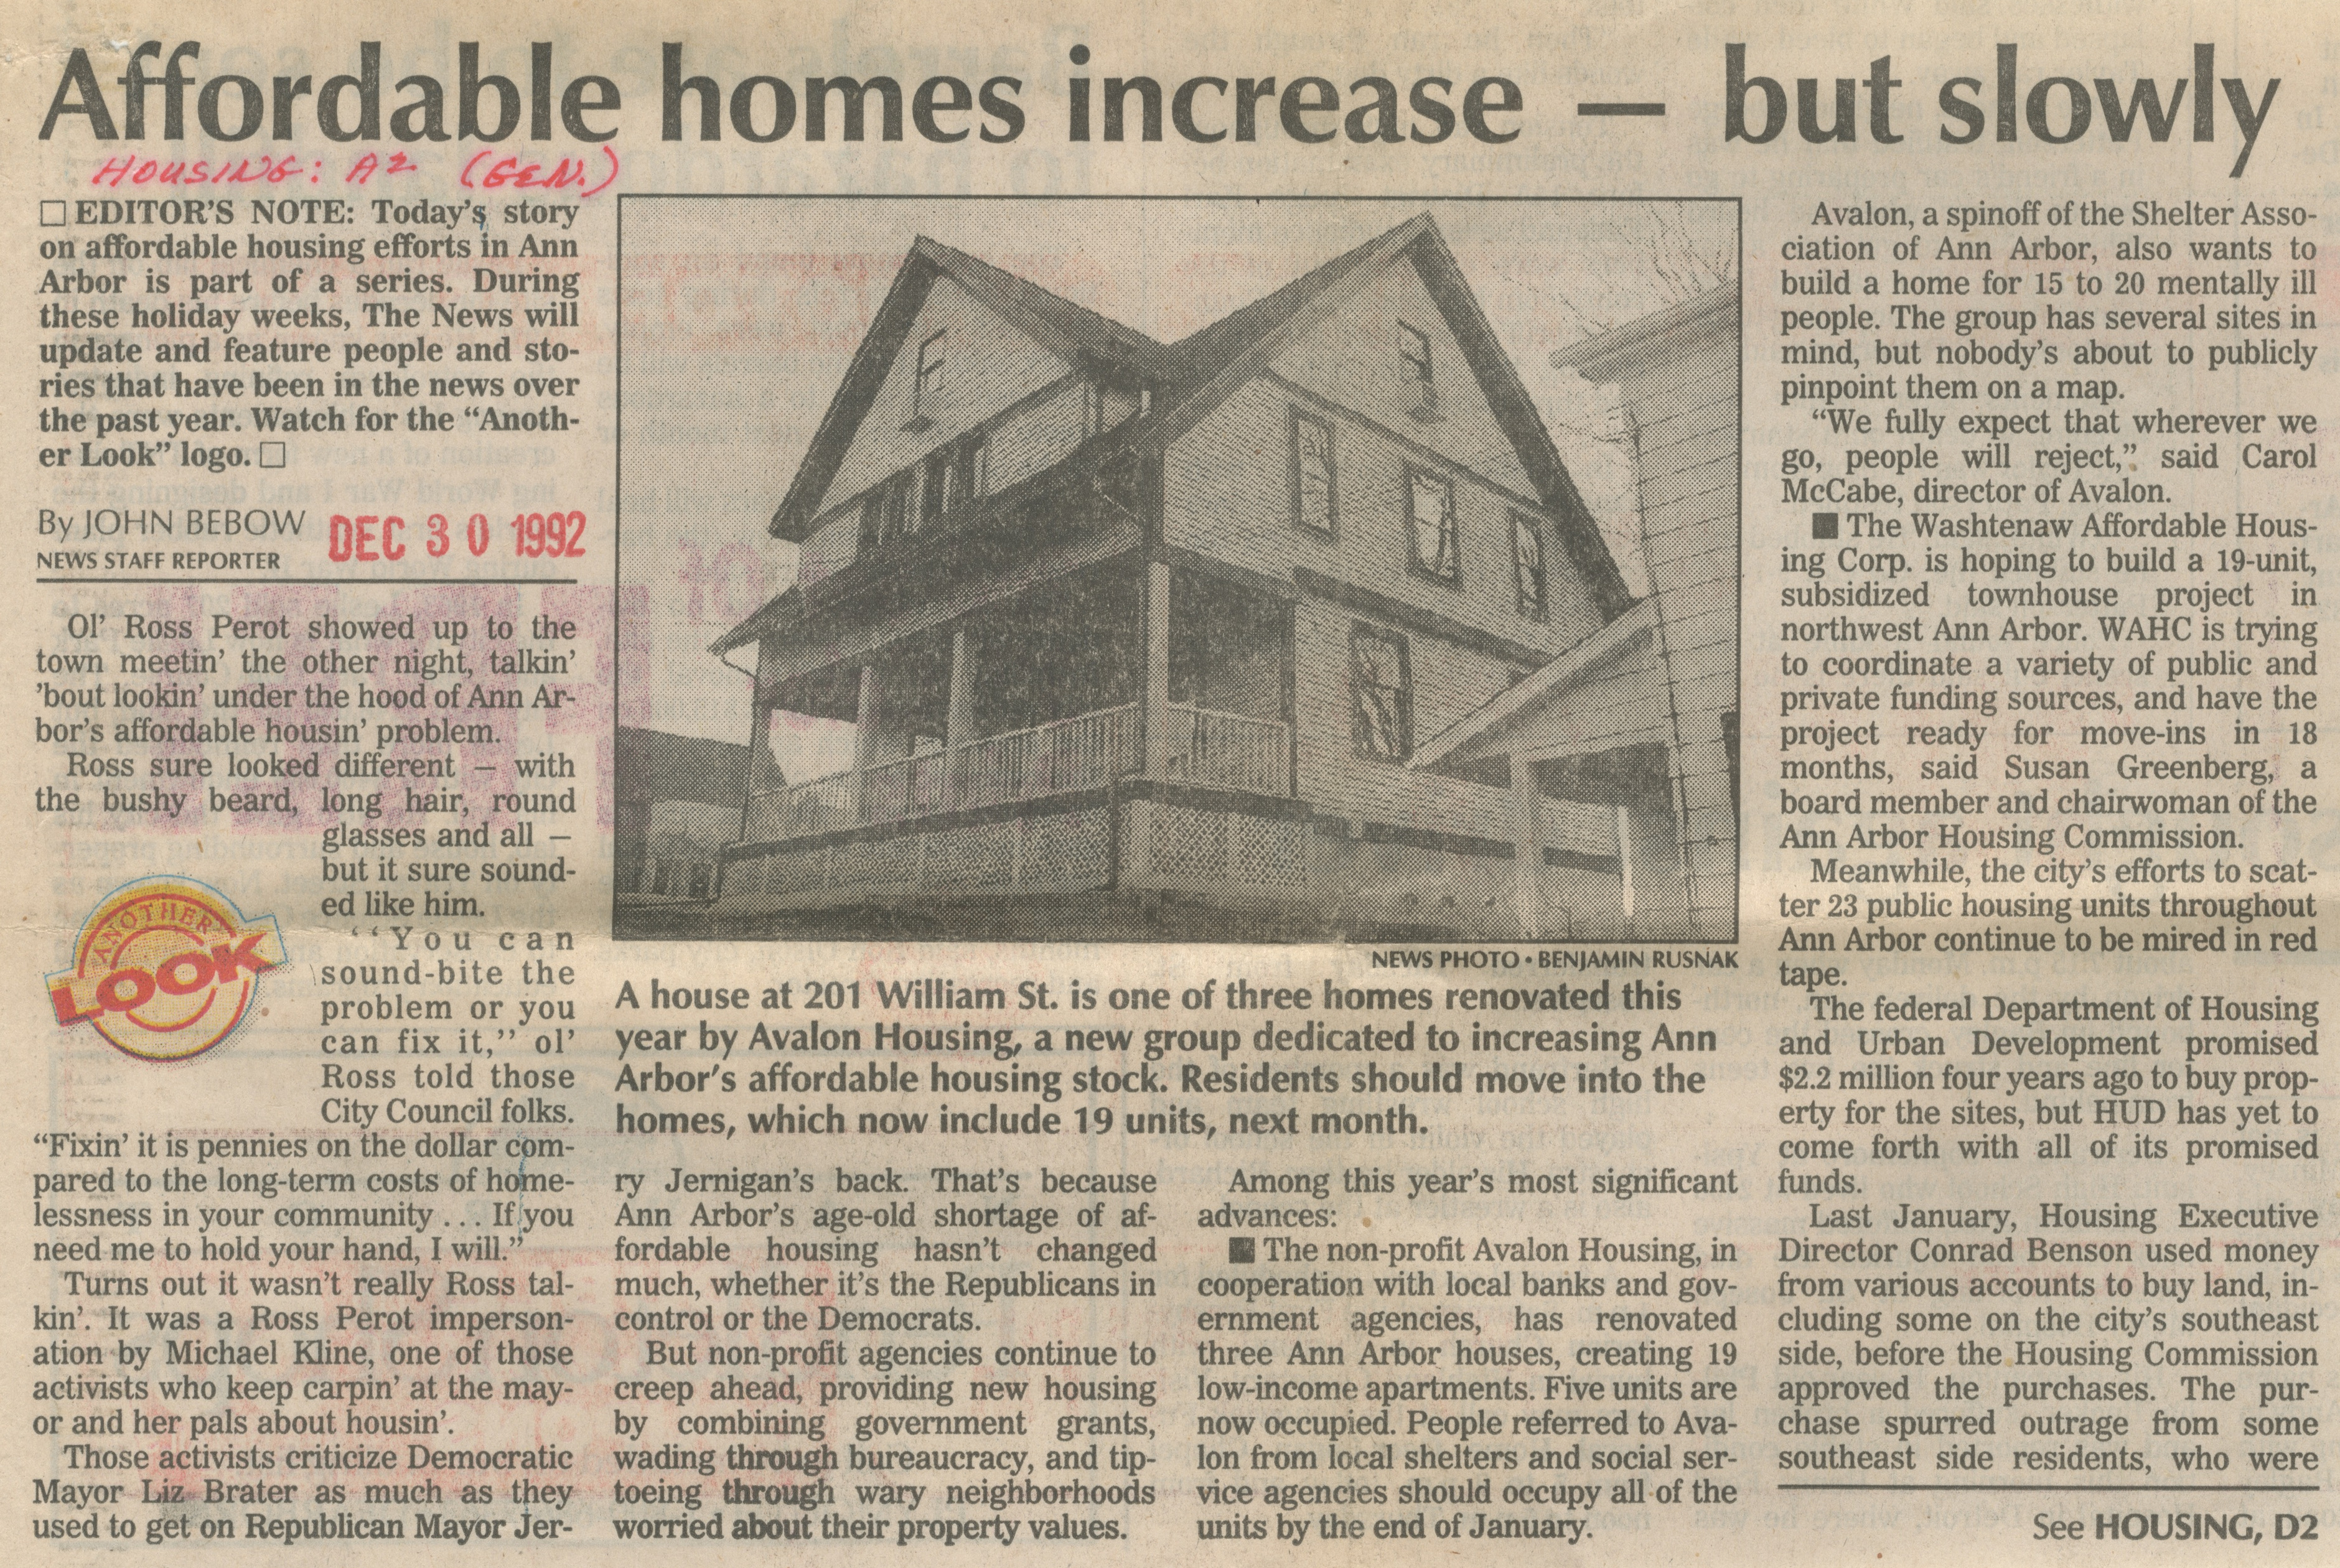 Affordable Homes Increase - But Slowly image